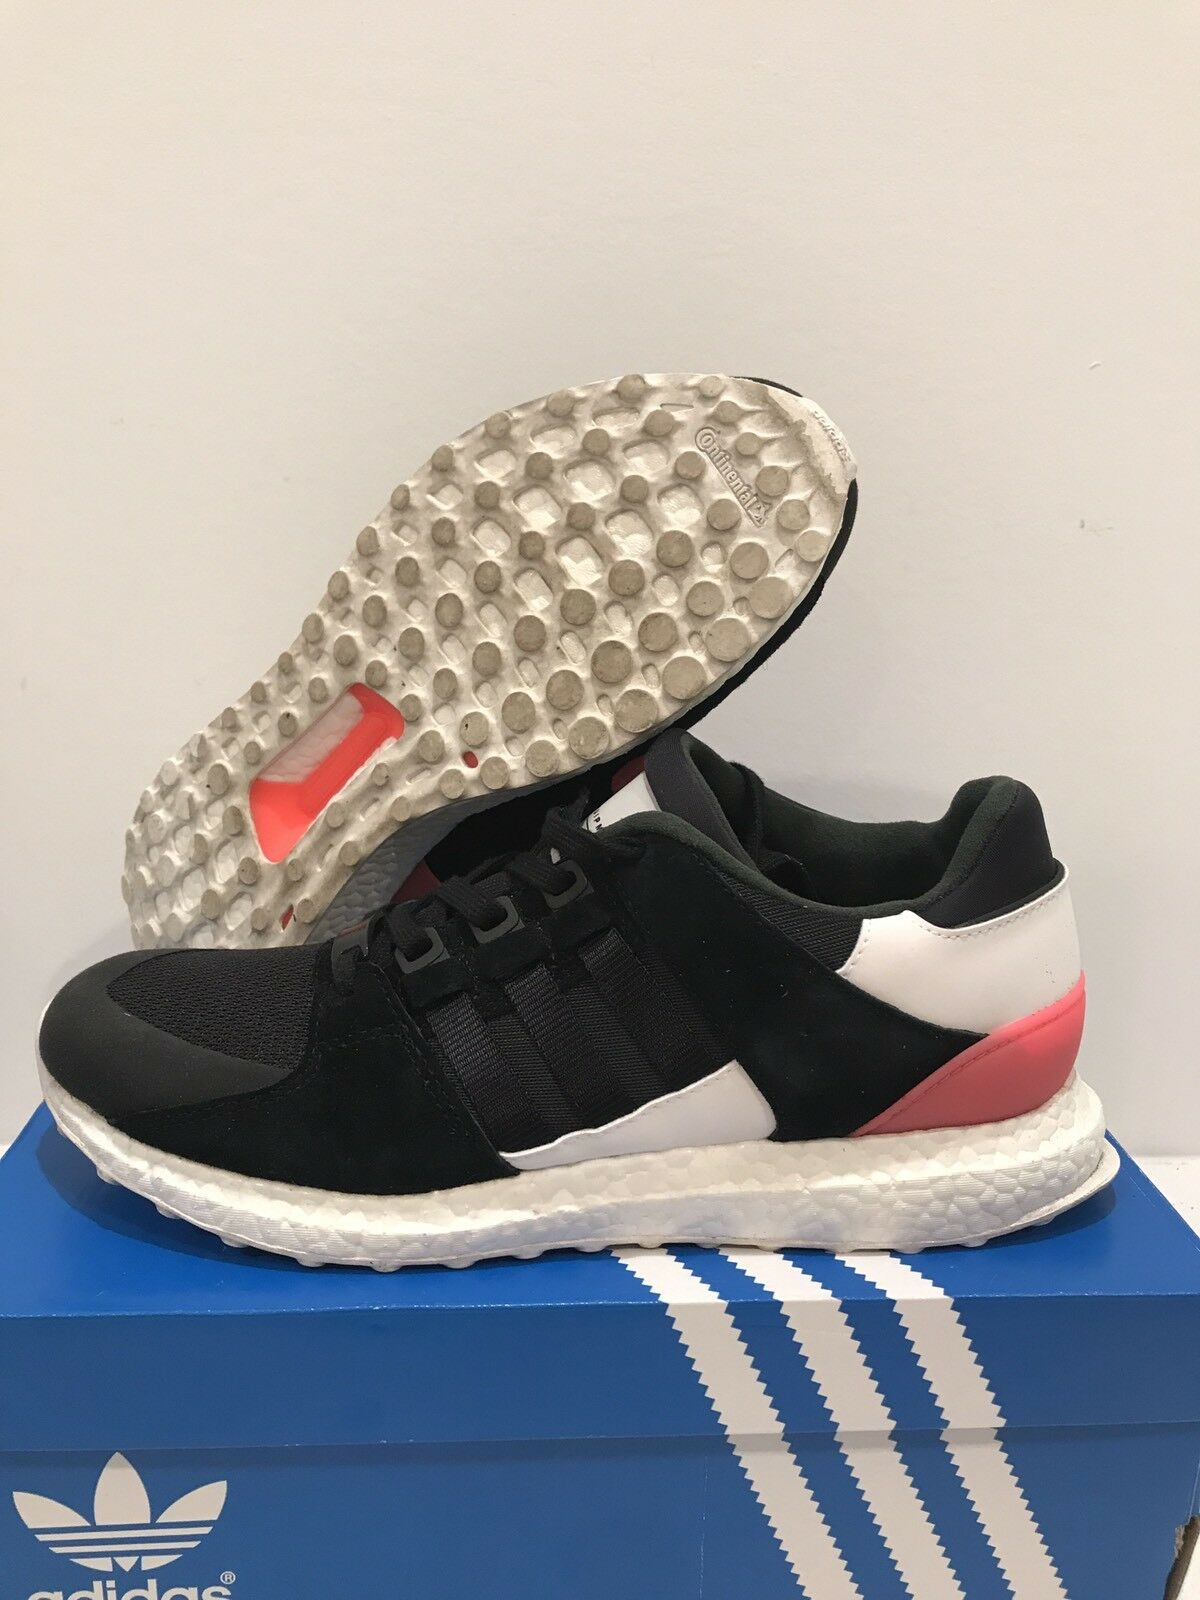 Adidas White EQT Support Ultra White Adidas Turbo Size 9.5 (Offer) 613443